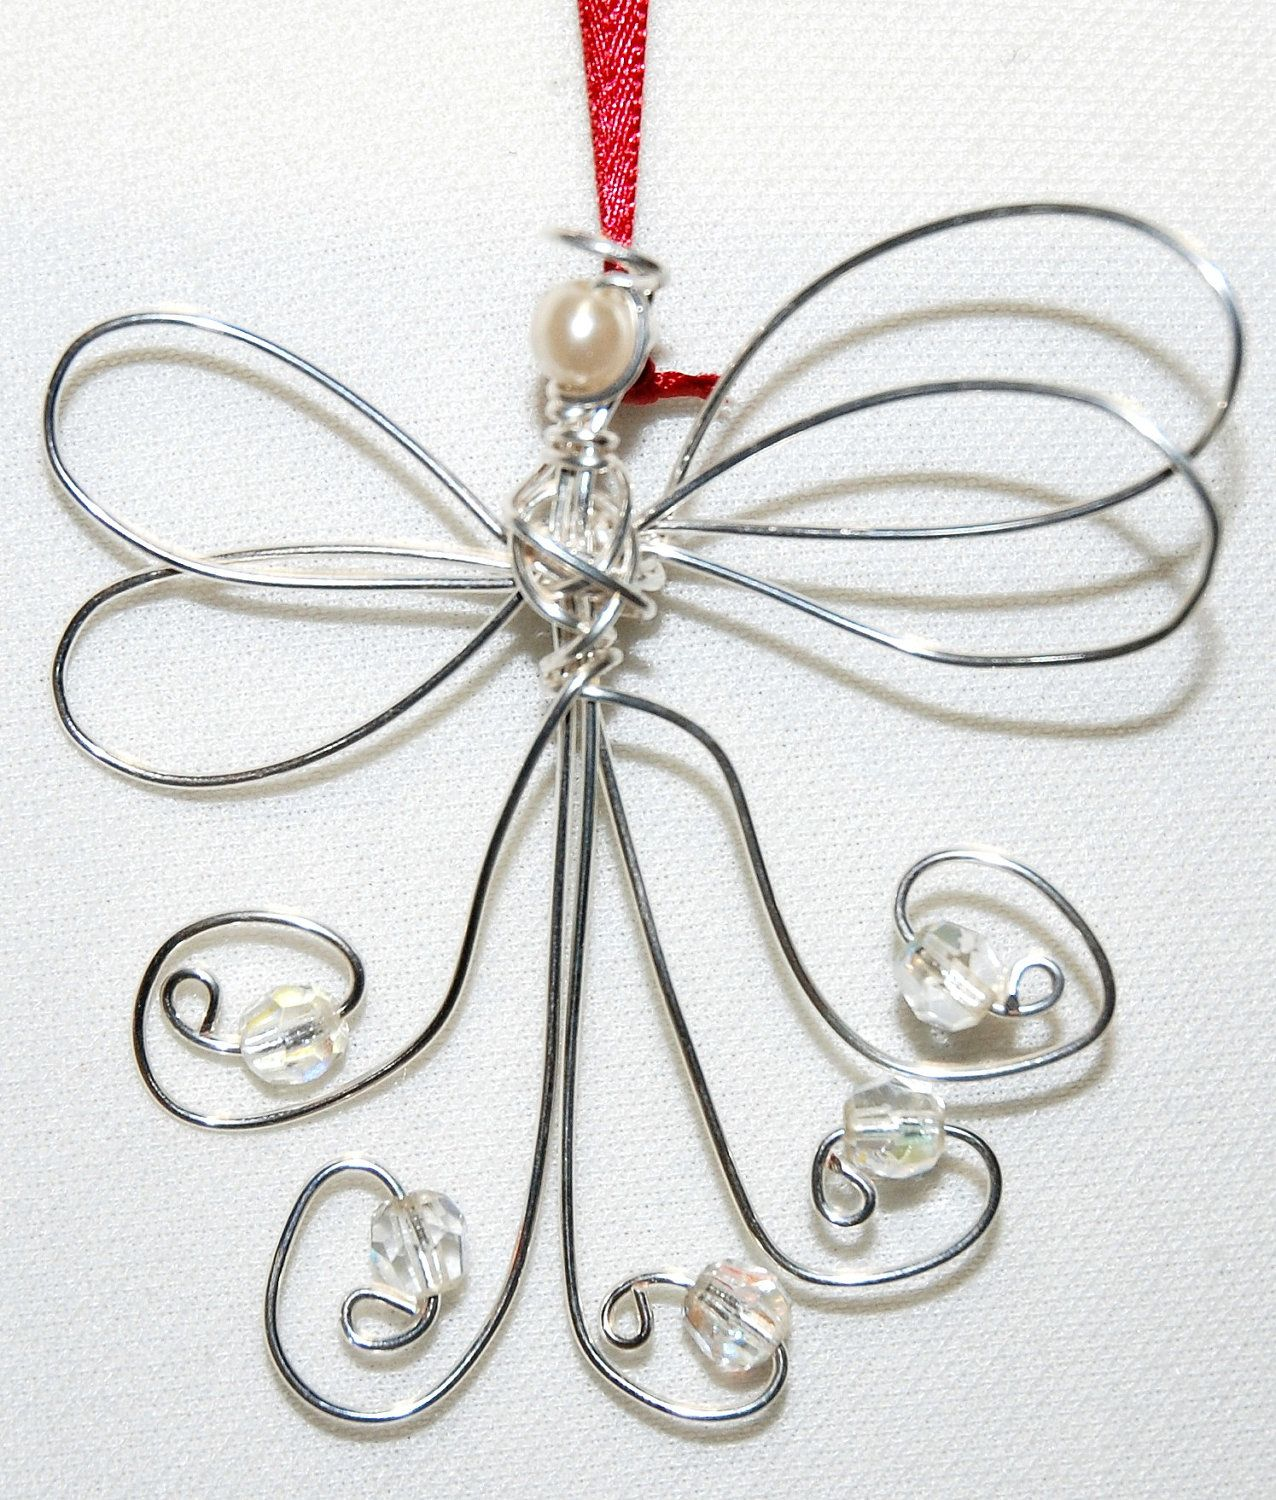 Wire Angel Ornament With Beads 15 00 Via Etsy Kjs Wire Ornaments Christmas Bead Wire Crafts